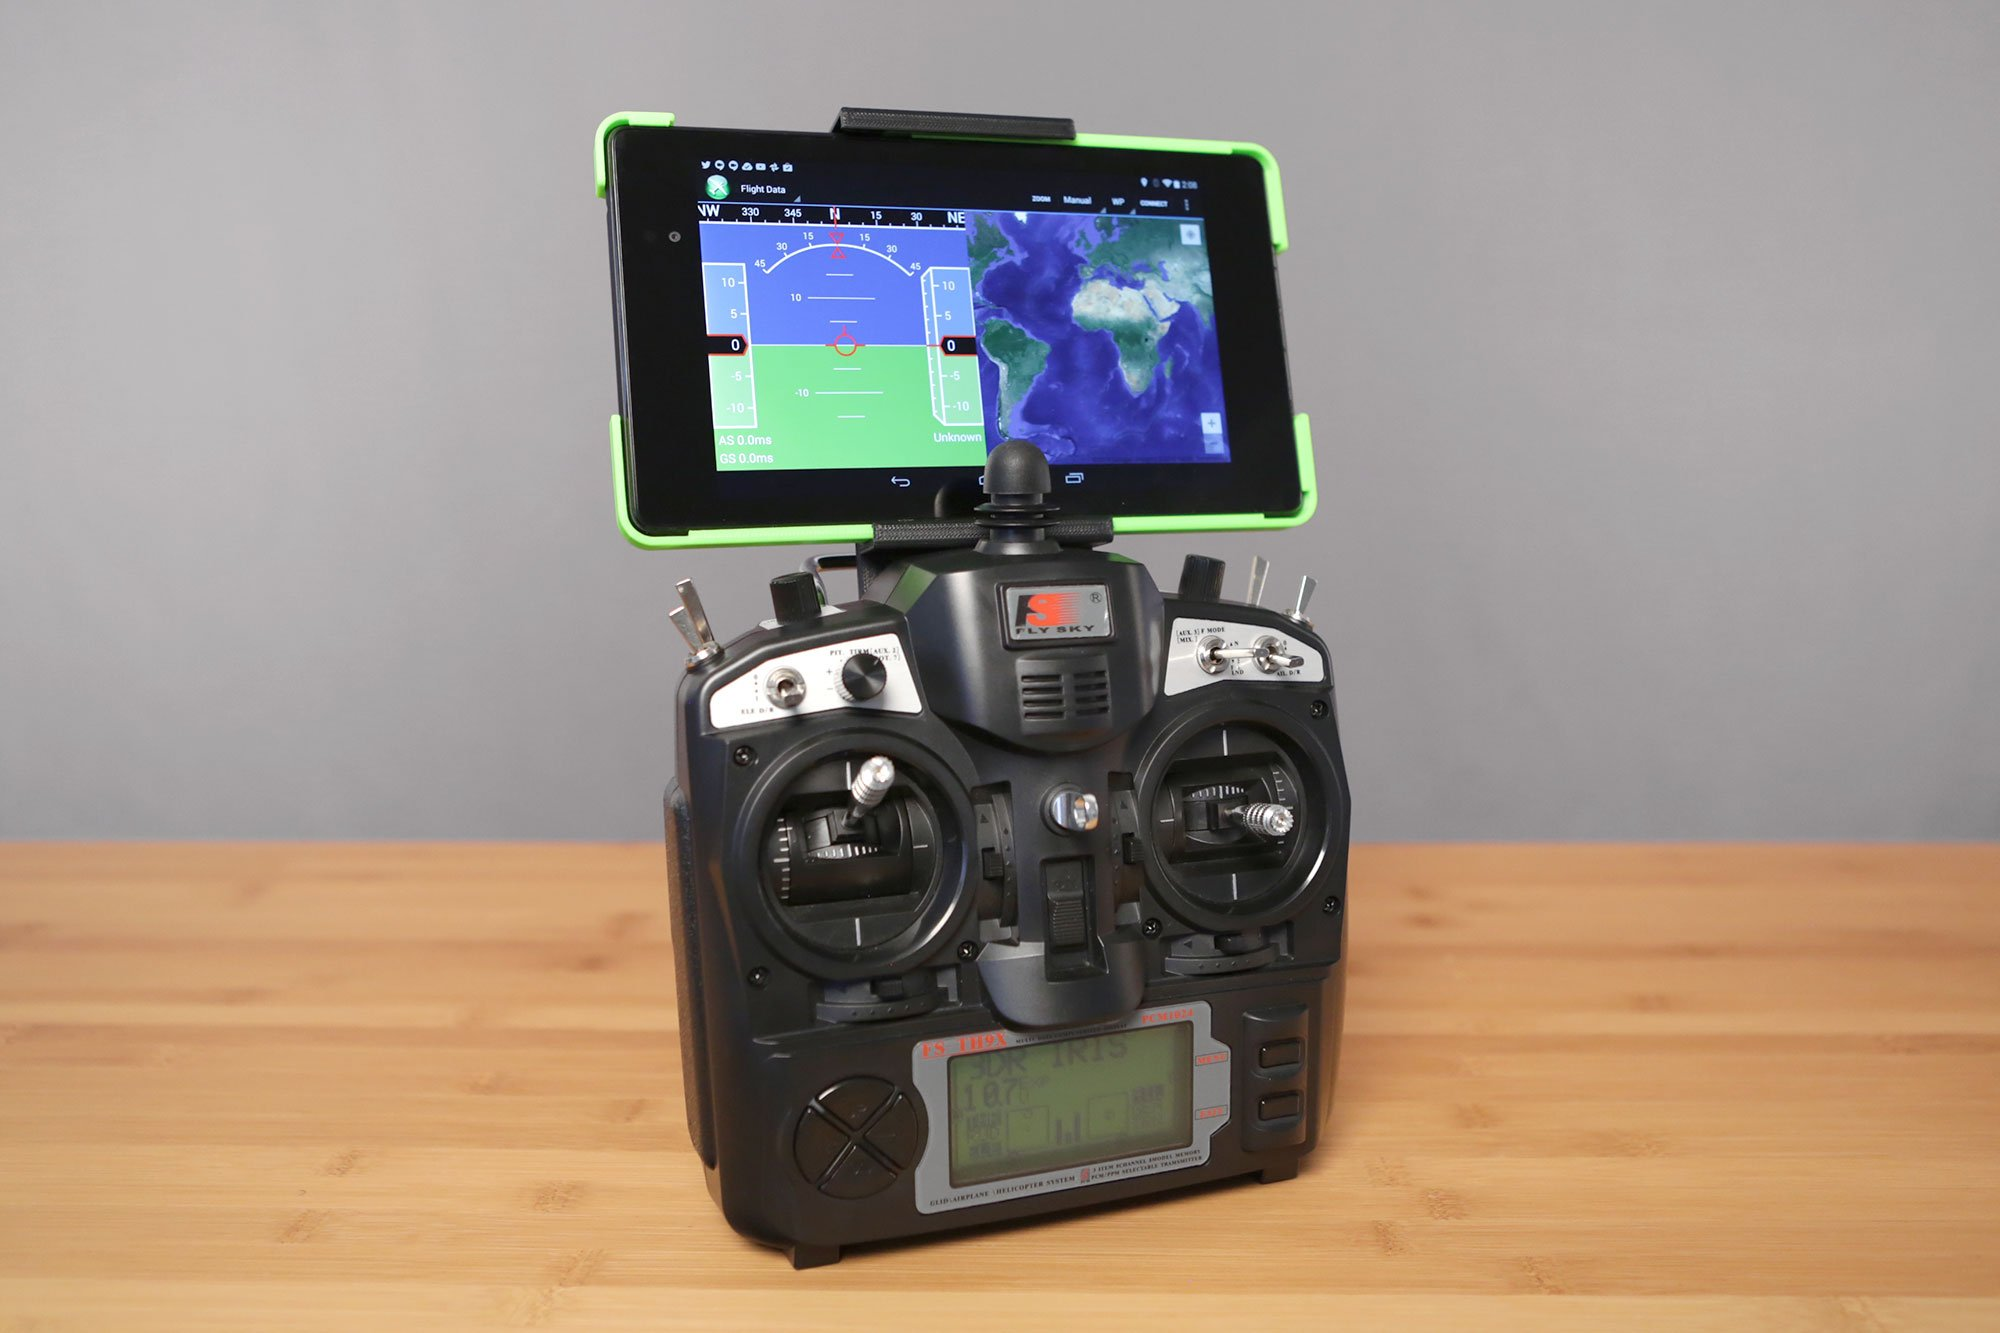 Iris transmitter mount for Nexus 7